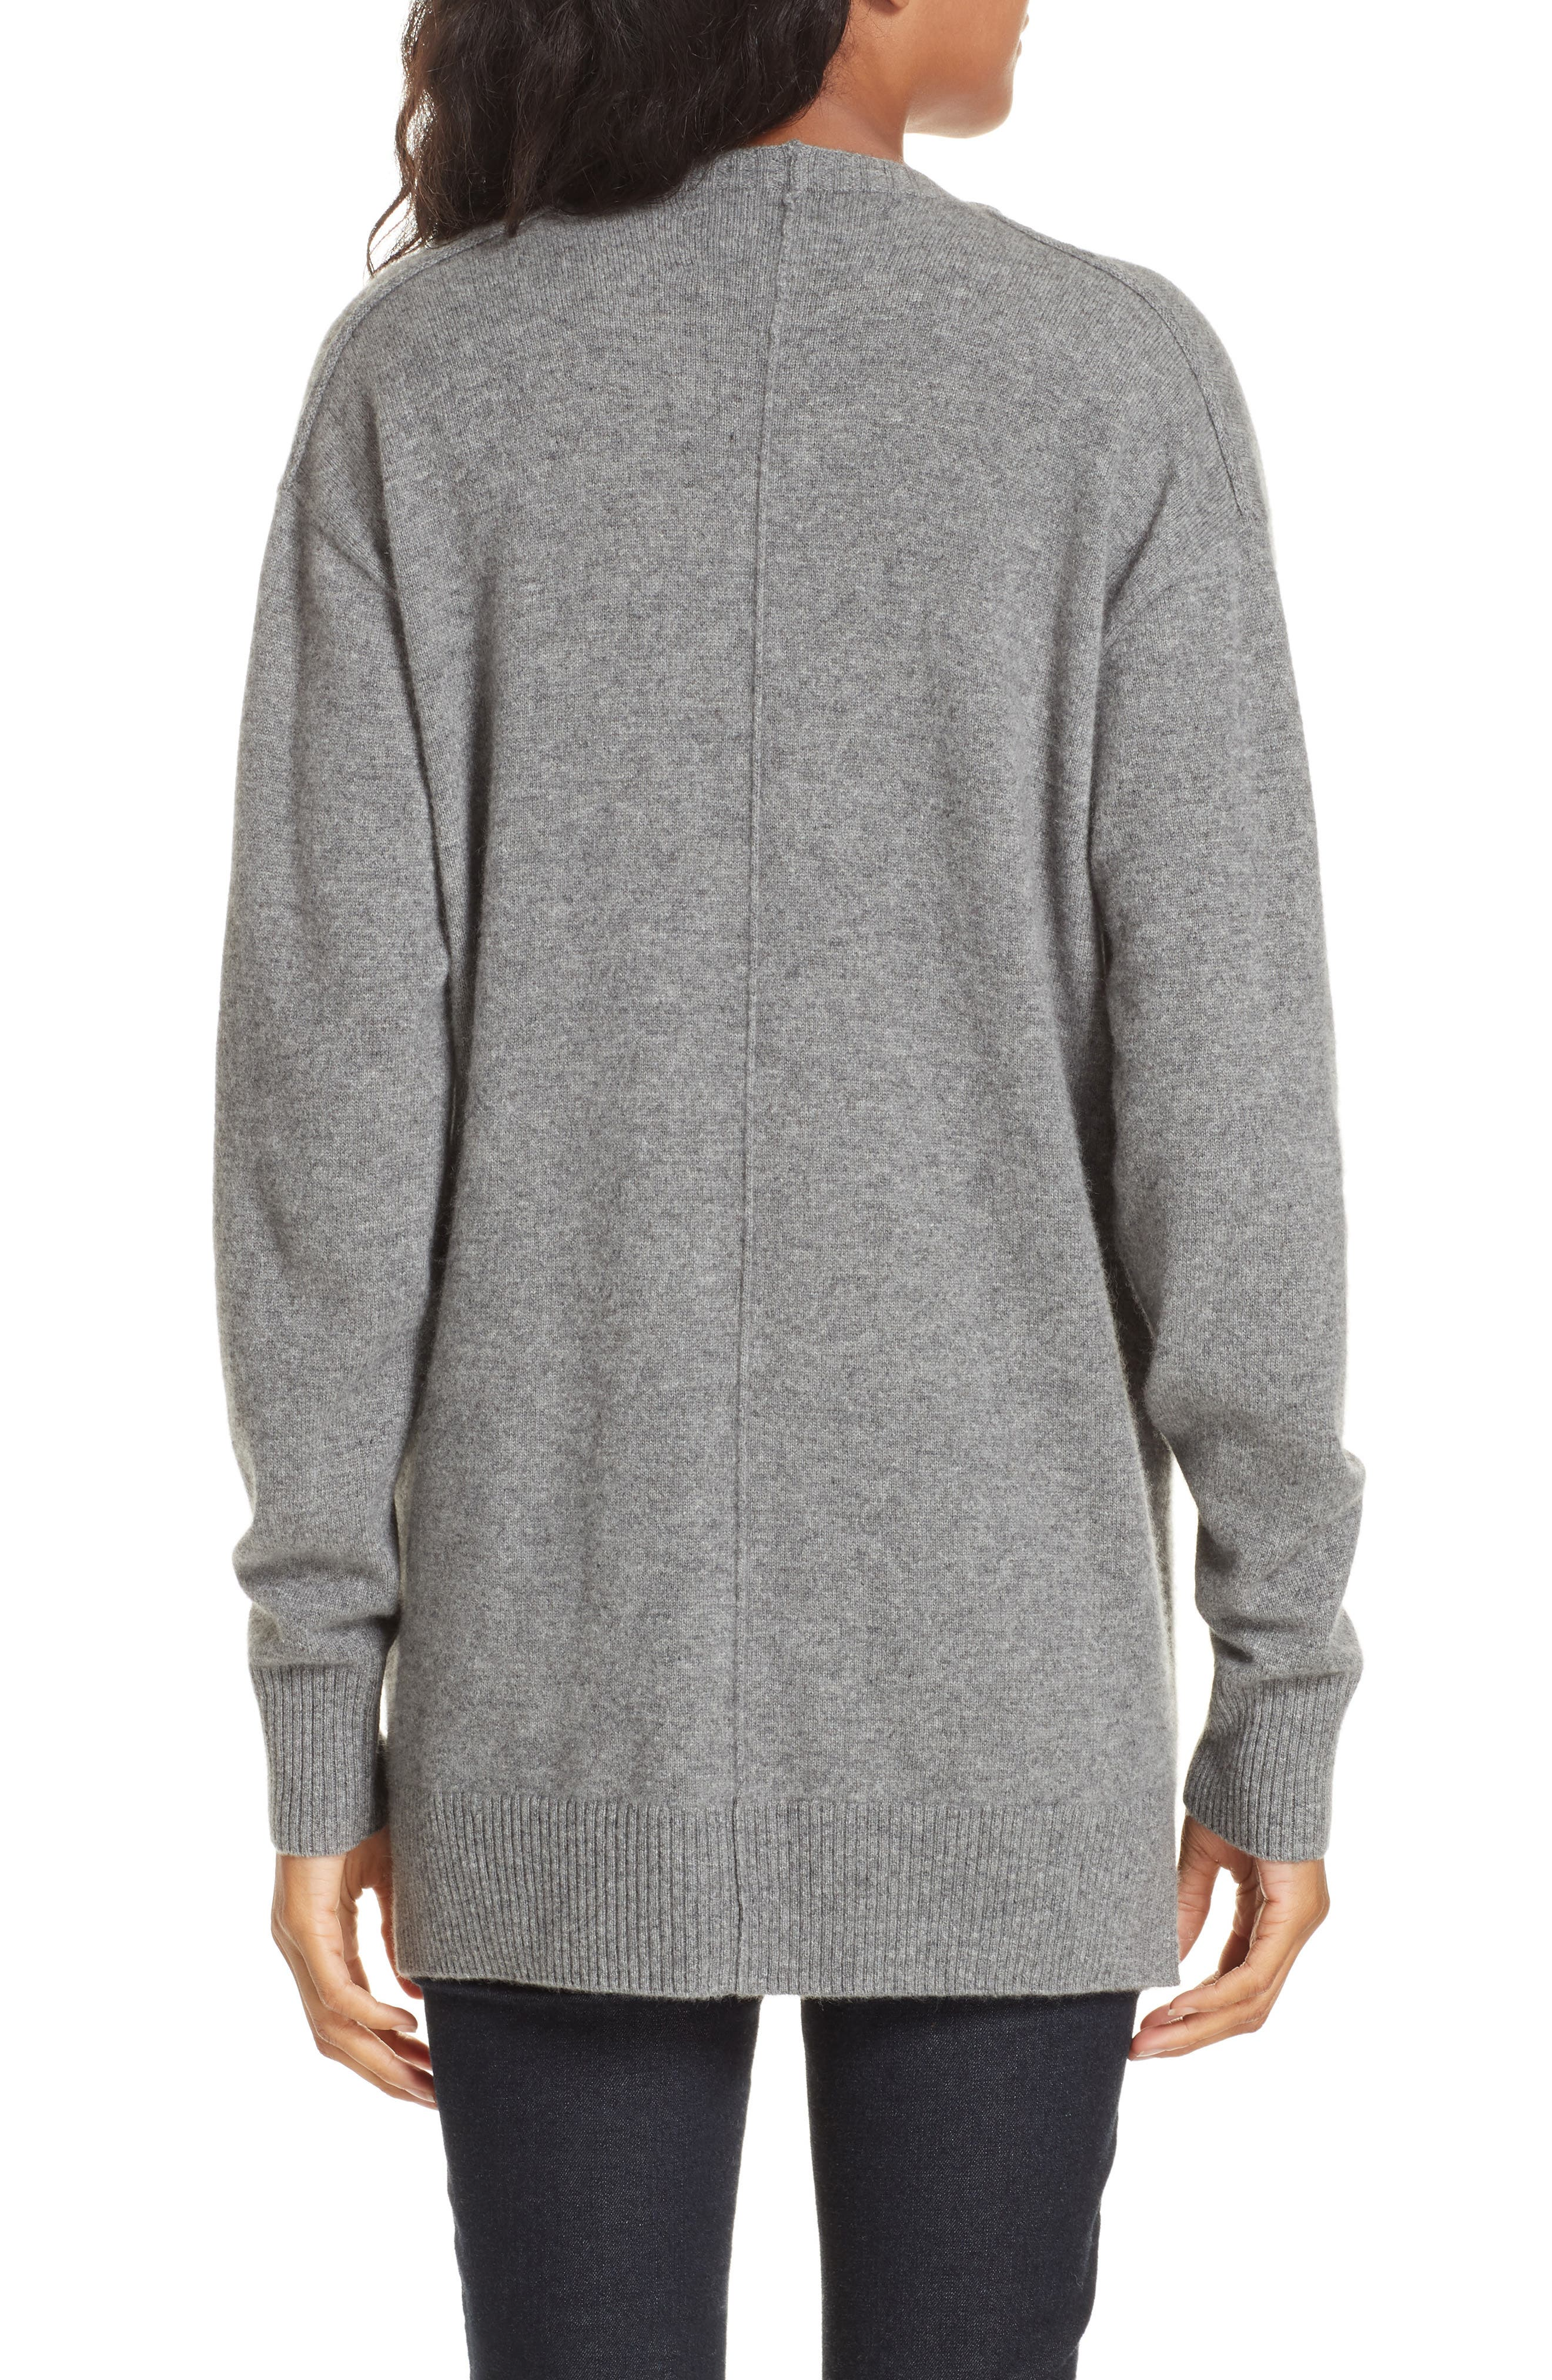 Bray Cashmere Cardigan,                             Alternate thumbnail 2, color,                             HEATHER GREY